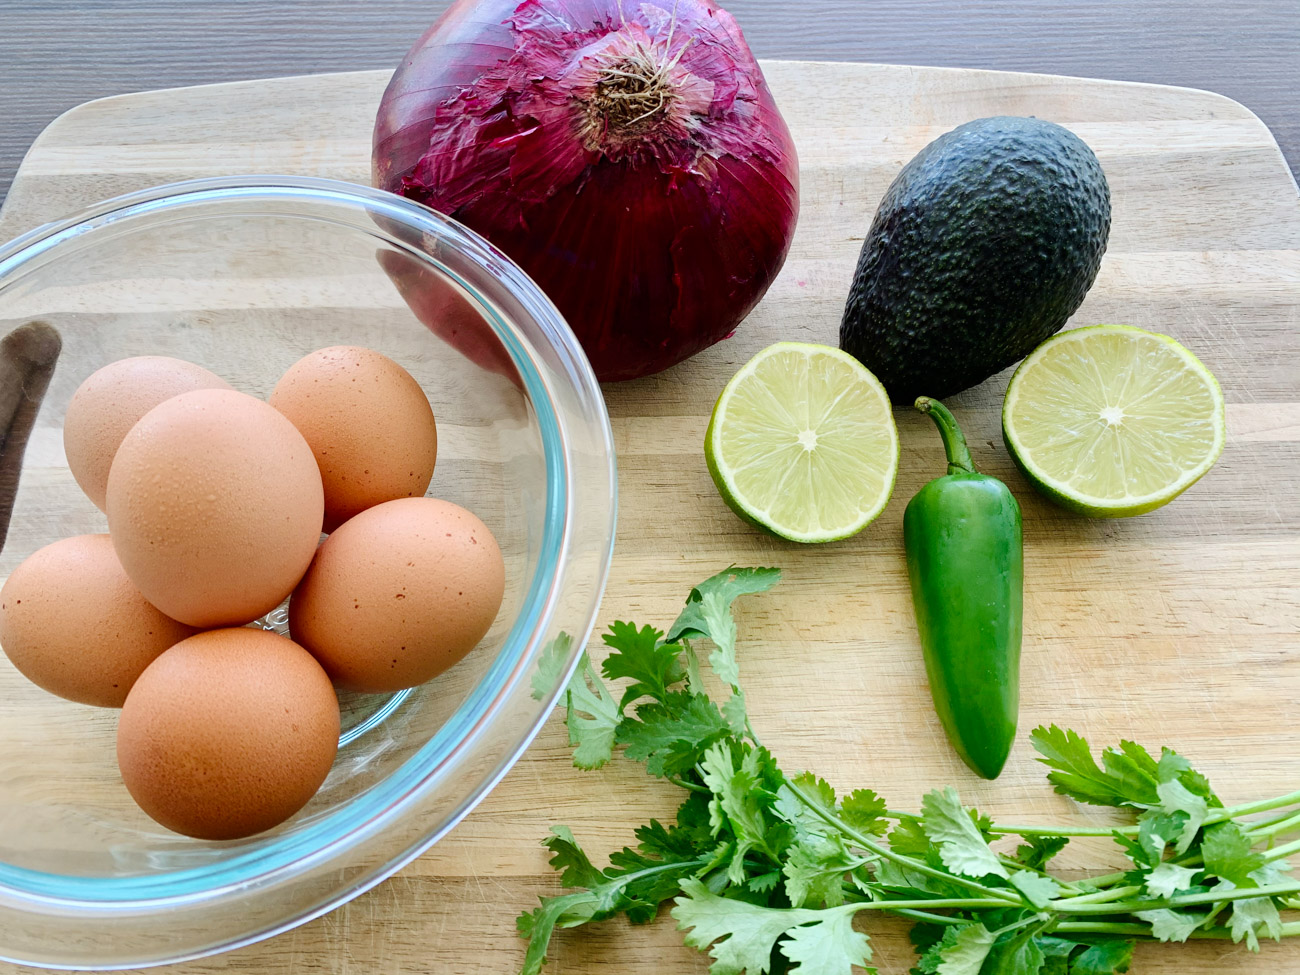 Ingredients for Deviled Eggs with Avocado